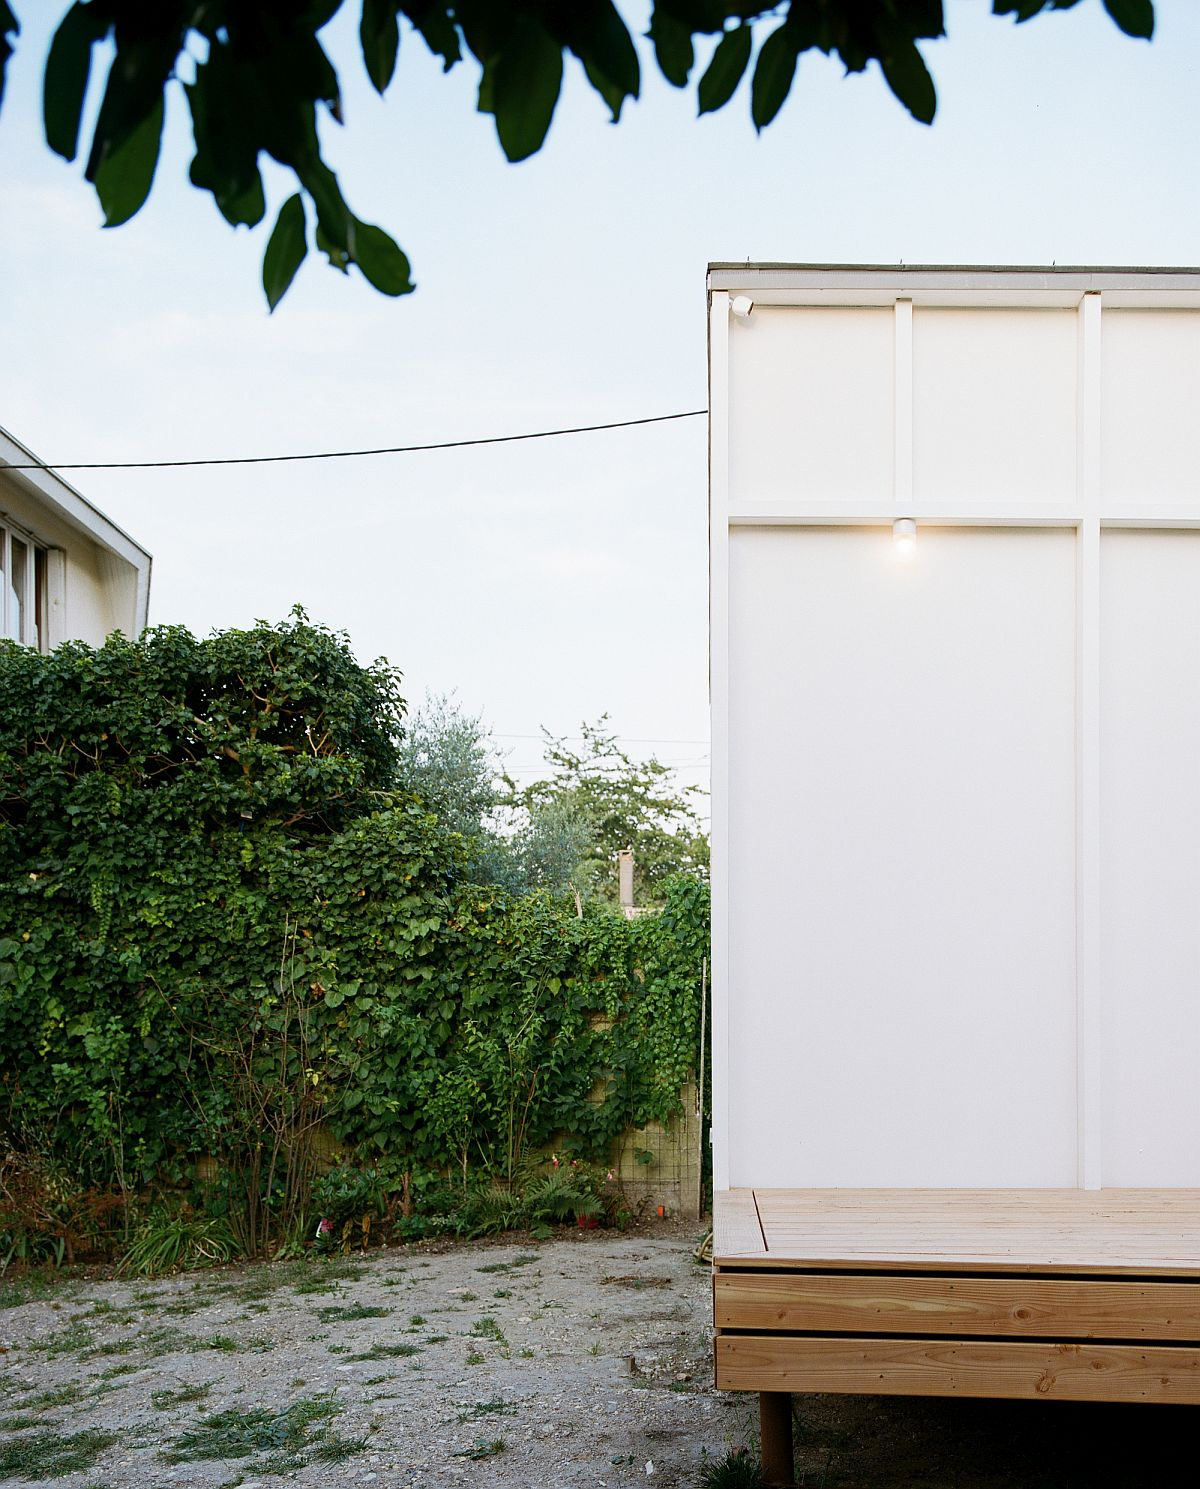 Box-styled rear extension of aging French home on an elevated wooden platform